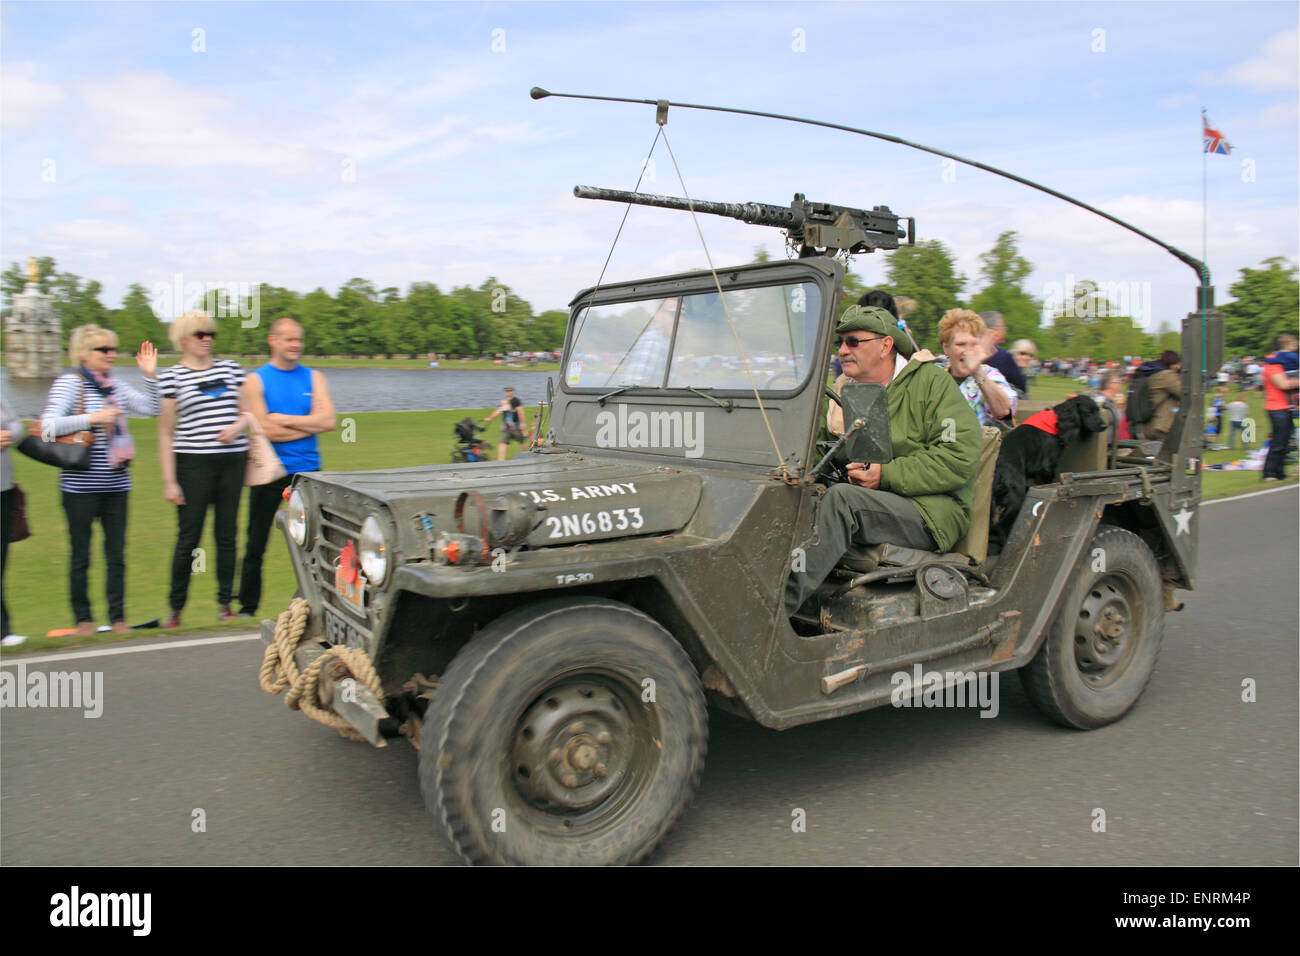 US Army Ford M151A1 MUTT (Military Utility Tactical Truck). Chestnut Sunday, 10th May 2015. Bushy Park, HamptonStock Photo